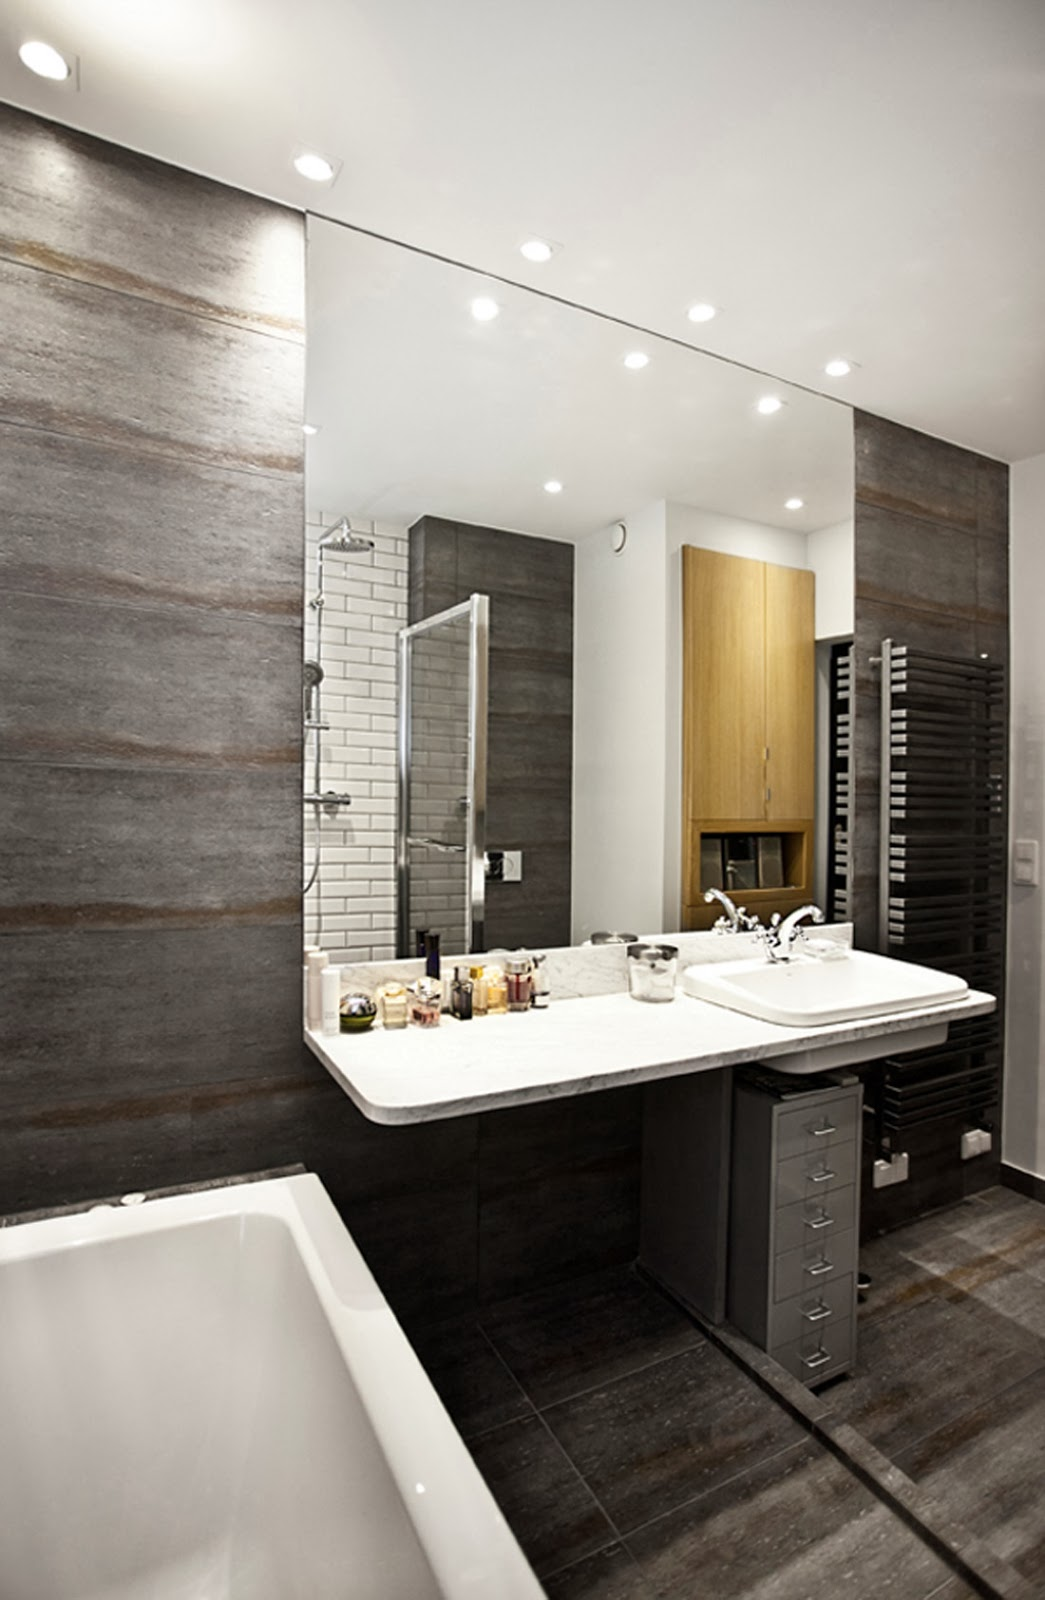 Loft bathroom ideas bathroom showers Designs for bathrooms with shower